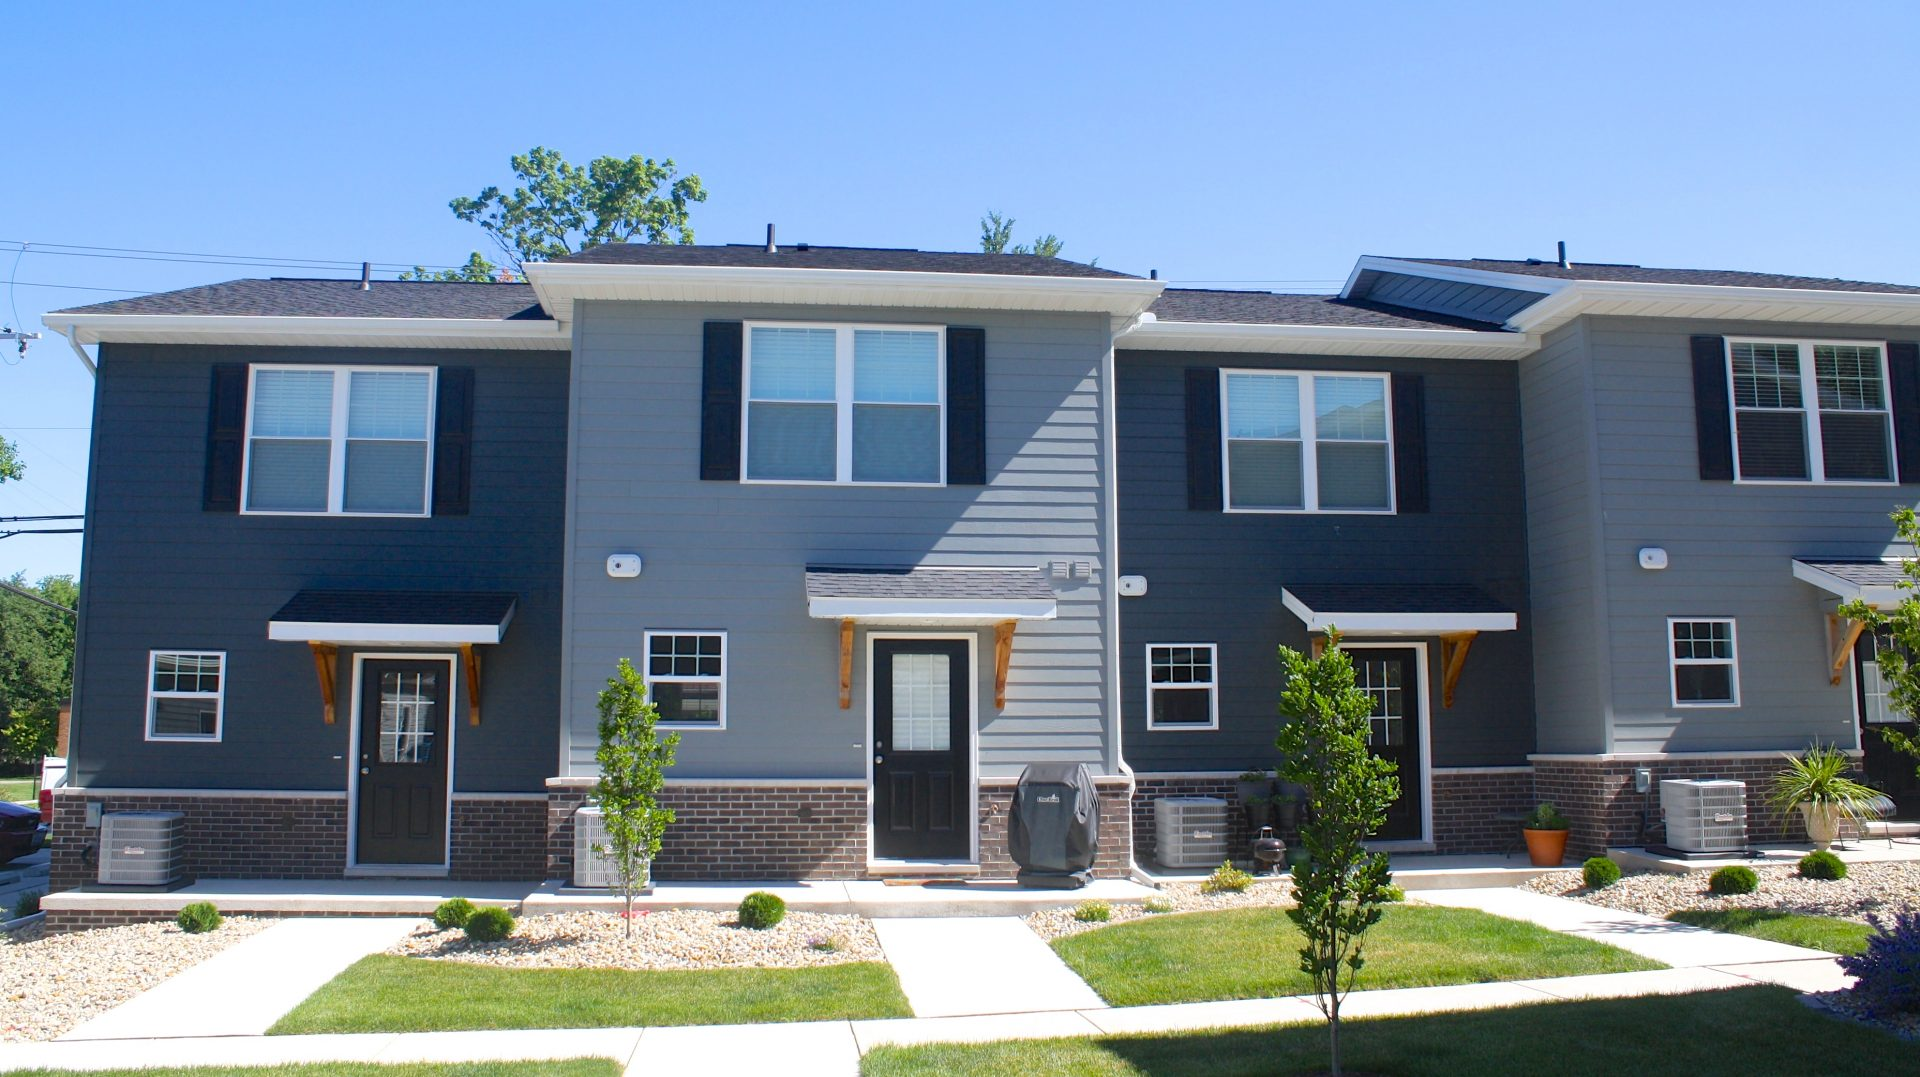 James Hardie Fiber Cement Siding Multifamily Apartment Condo Townhouse Portland OR Vancouver WA